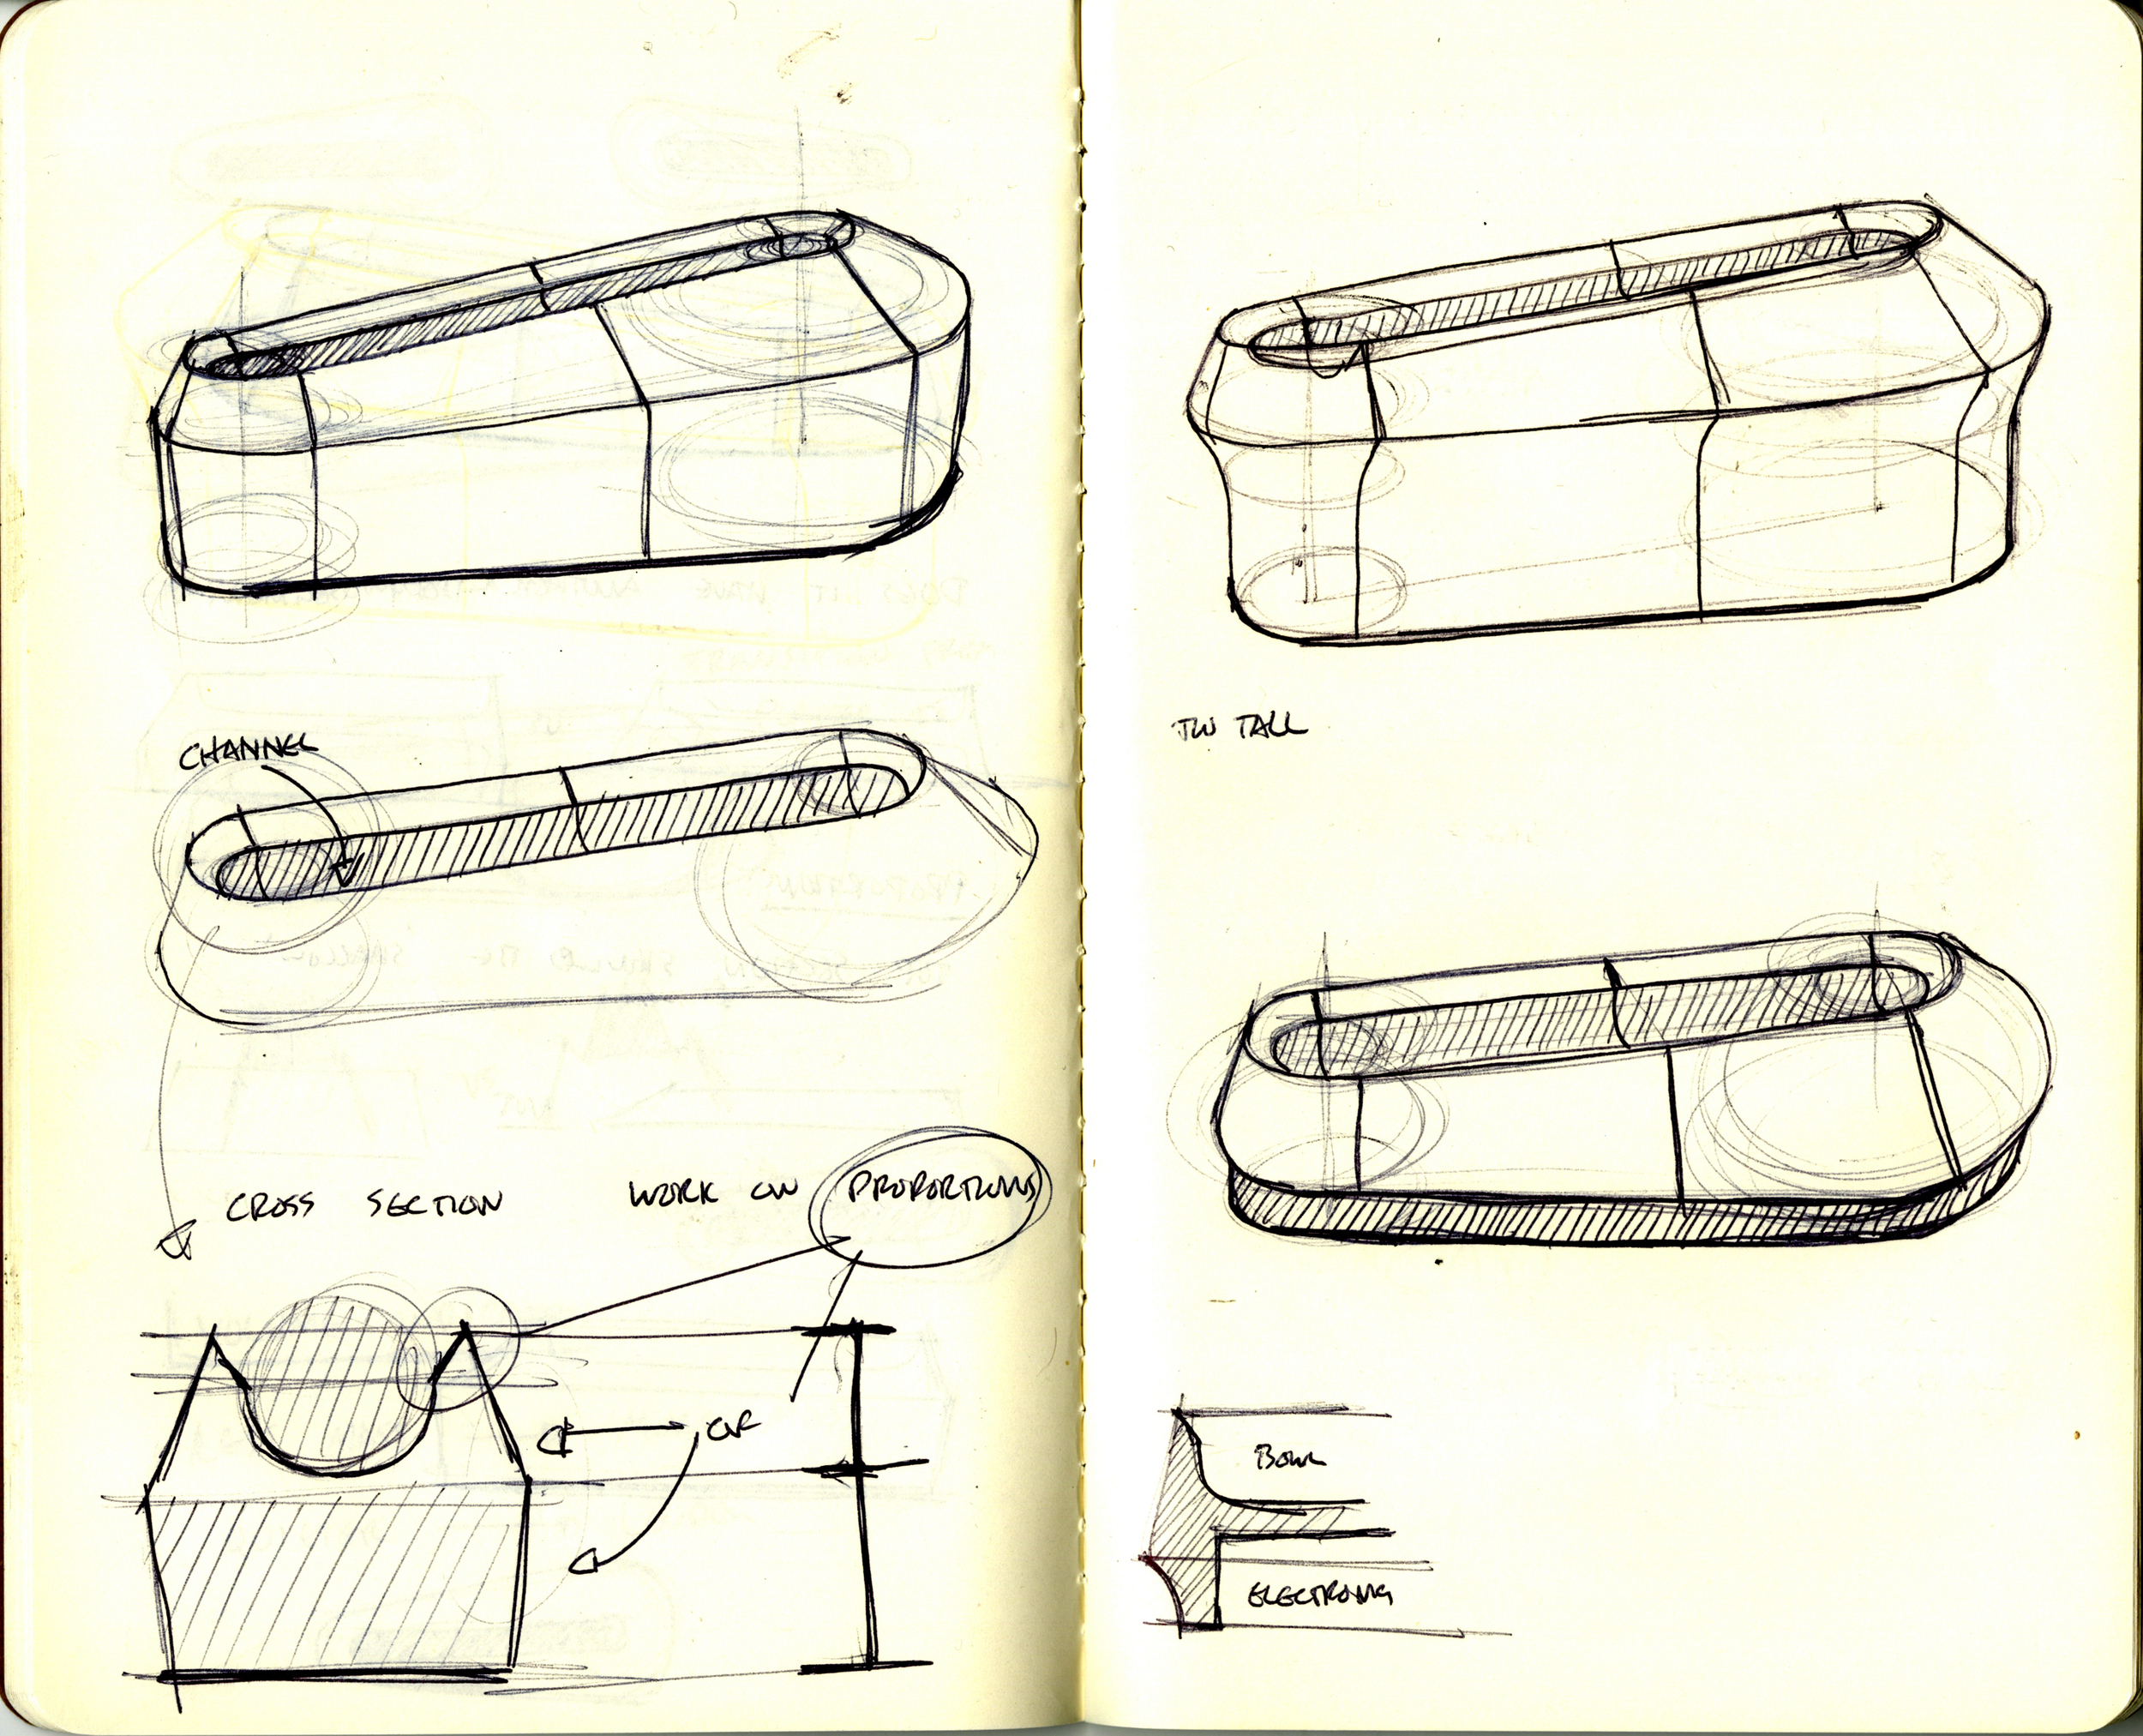 radio_sketchbook_12.jpg